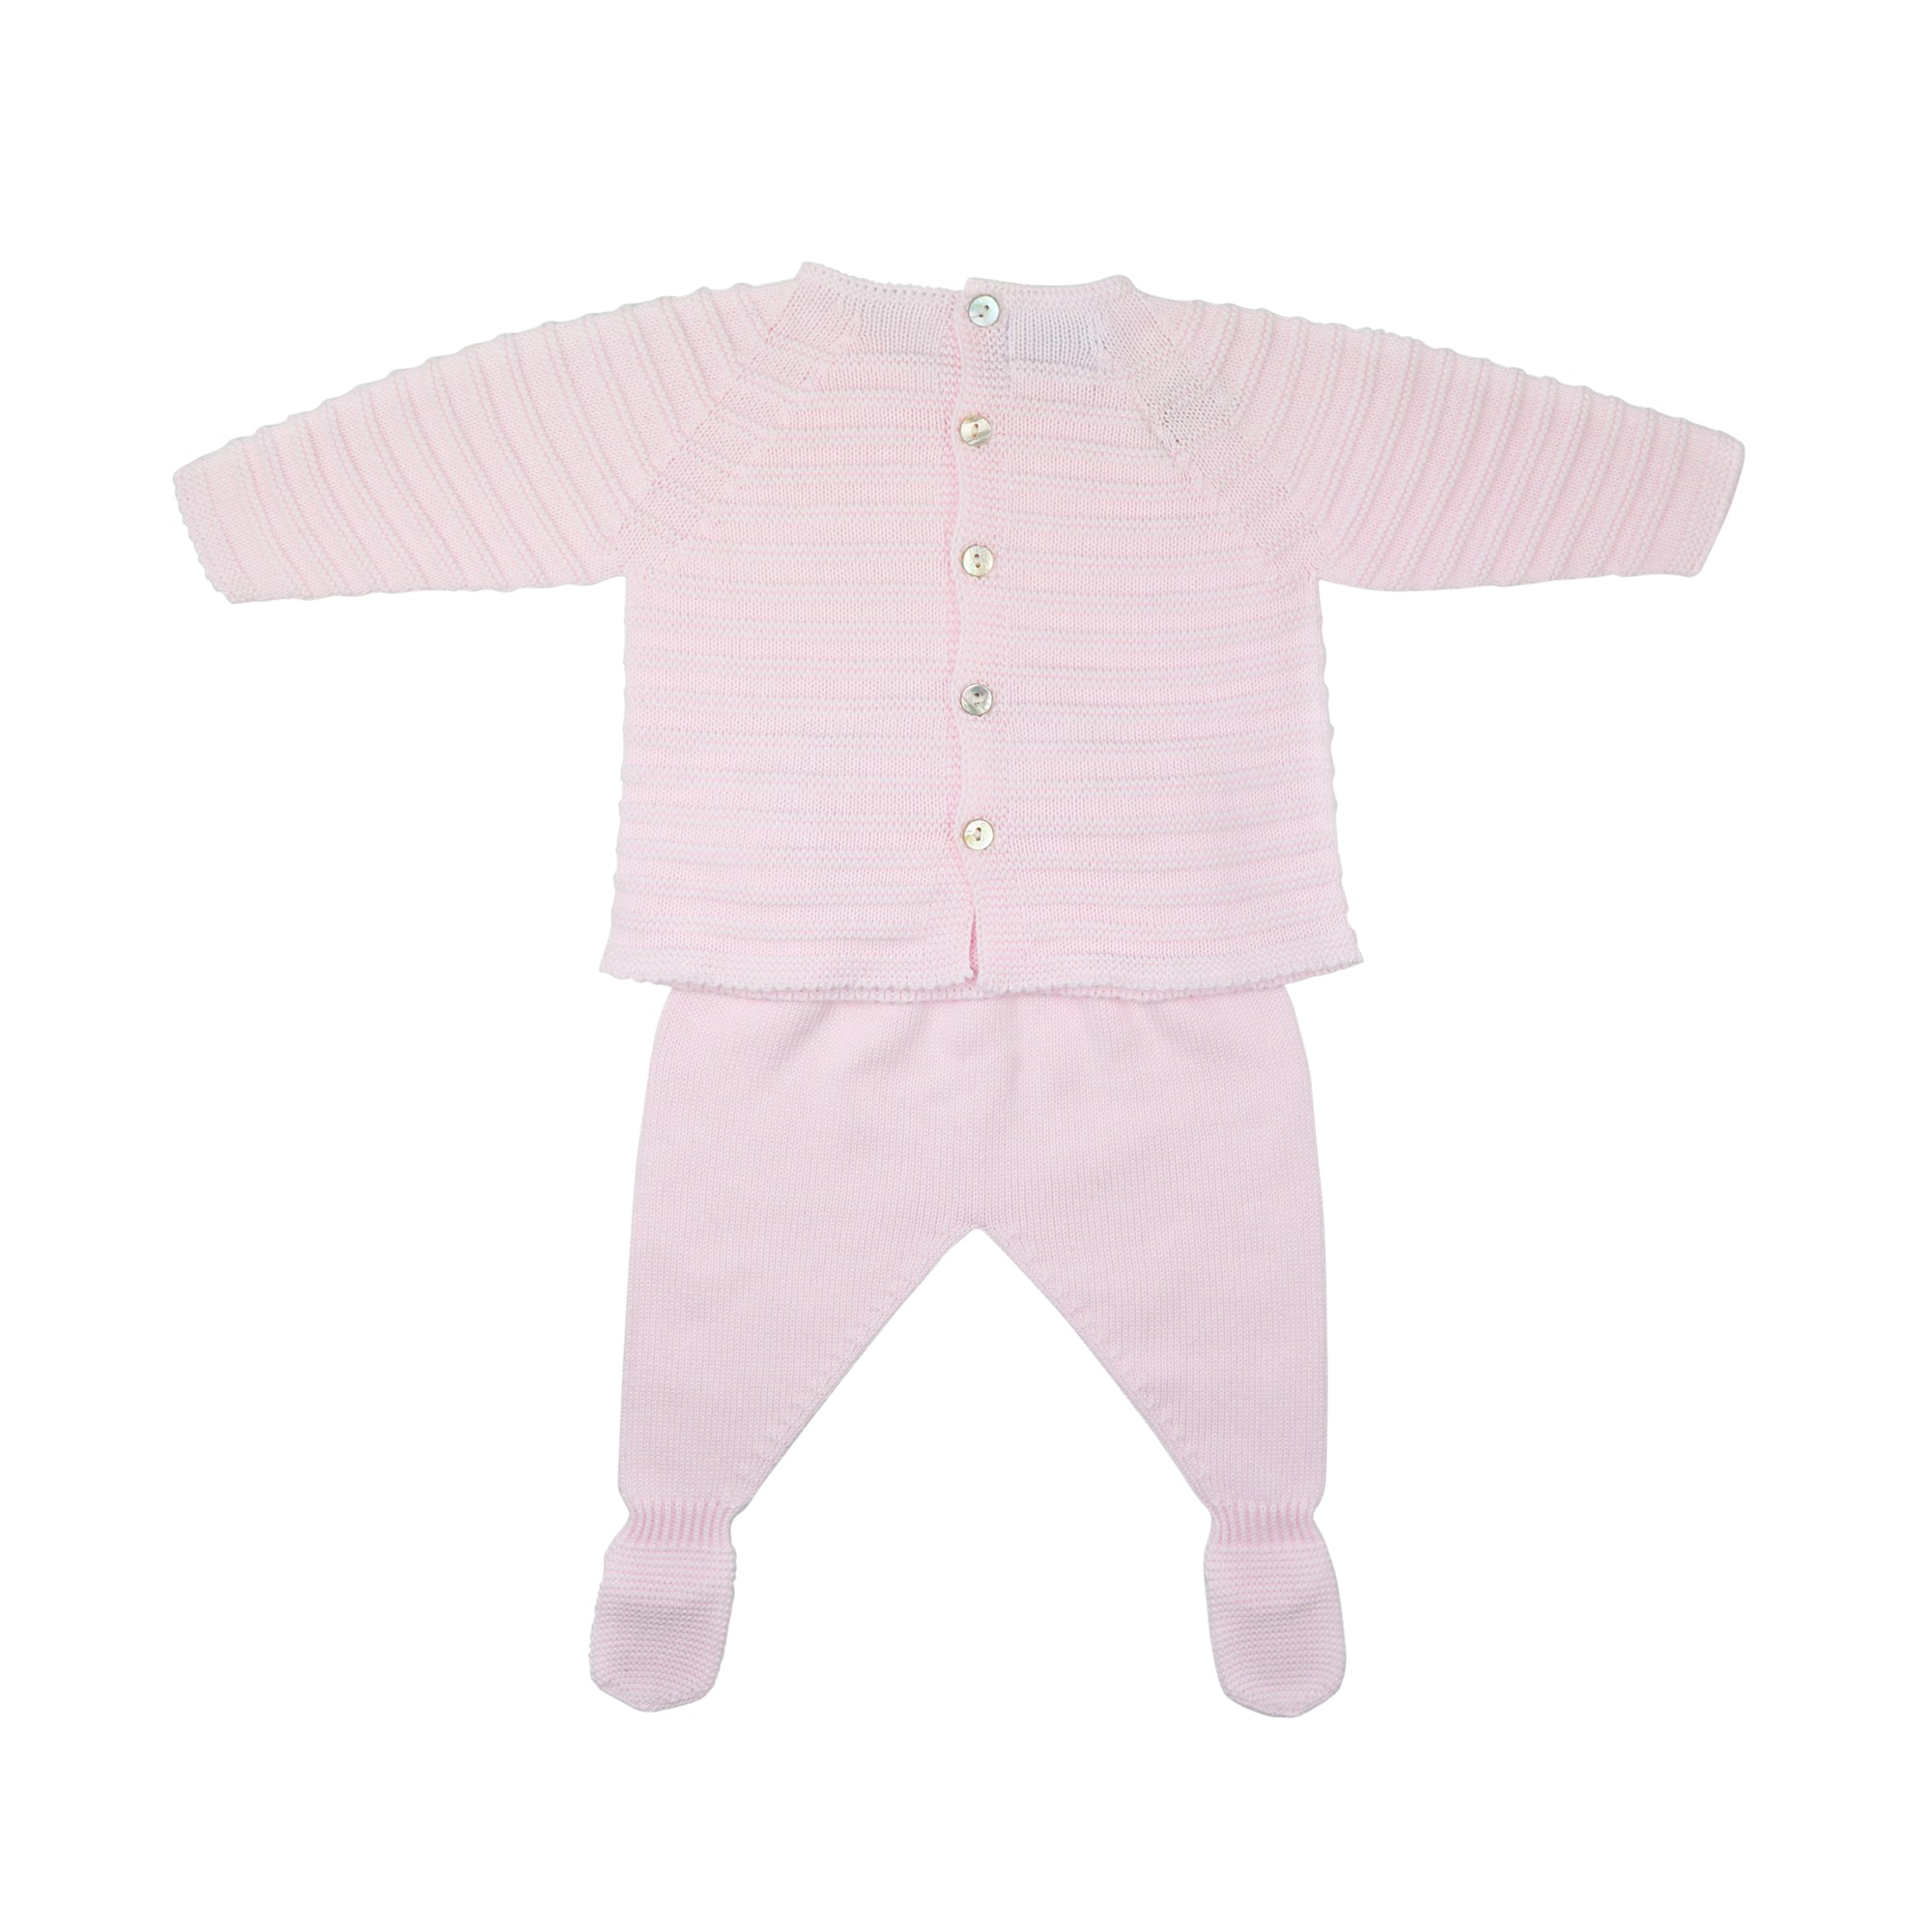 Floc Baby Pink Knitted Two Piece Set